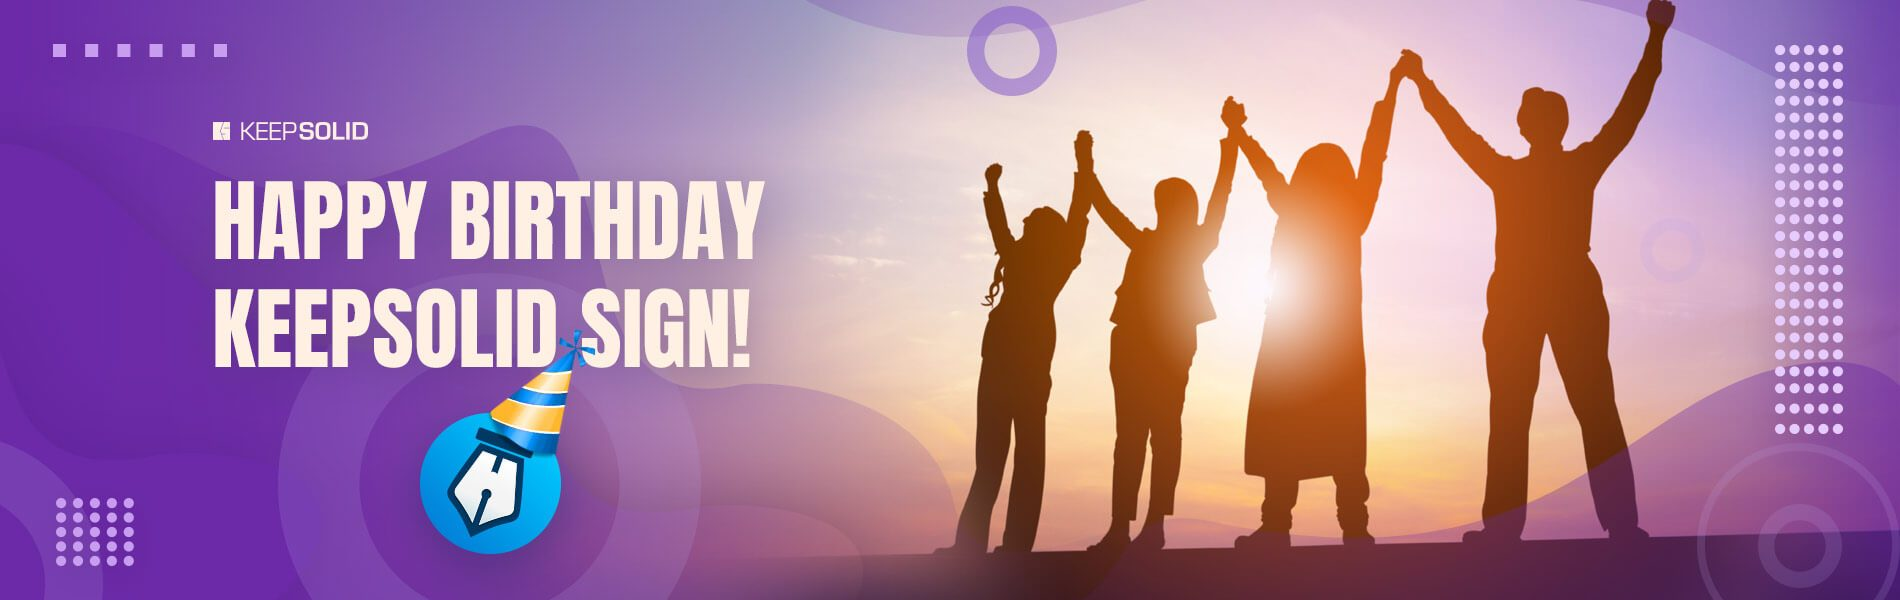 Silhouette of Business People Celebrating a Birthday of Electronic Signature Solution by KeepSolid.